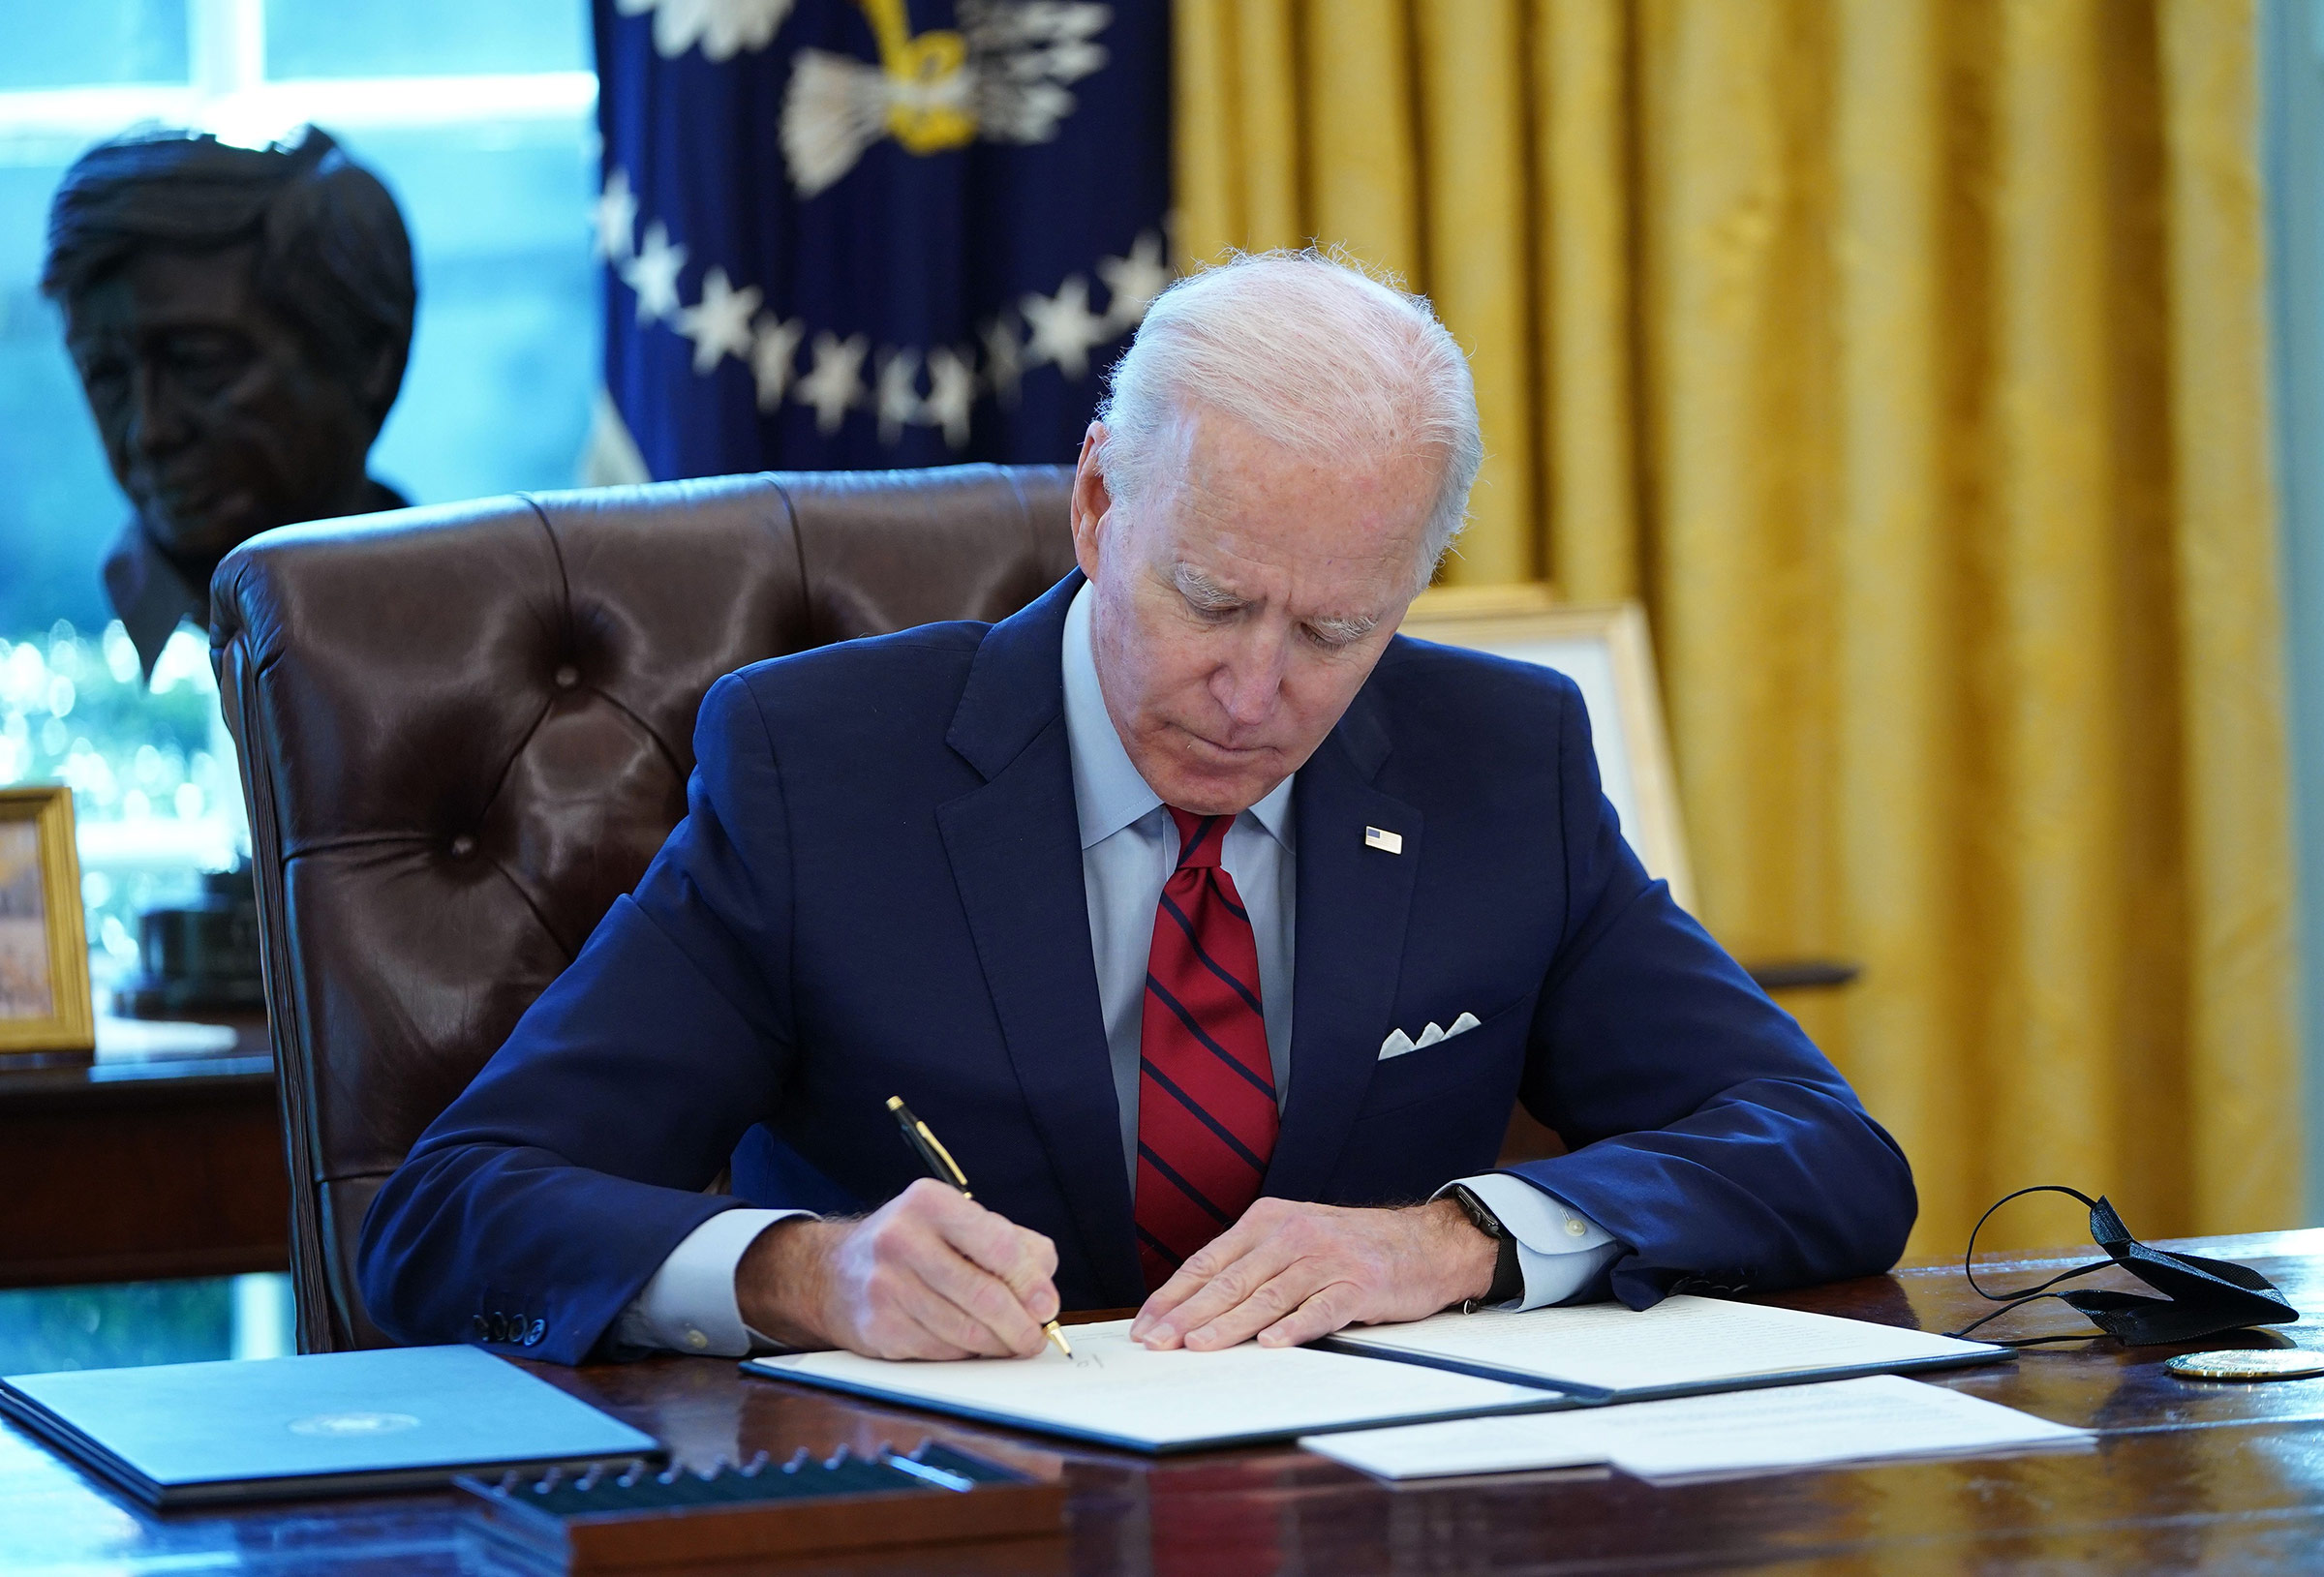 President Joe Biden signs executive orders on health care in the Oval Office of the White House in Washington, DC, on January 28.